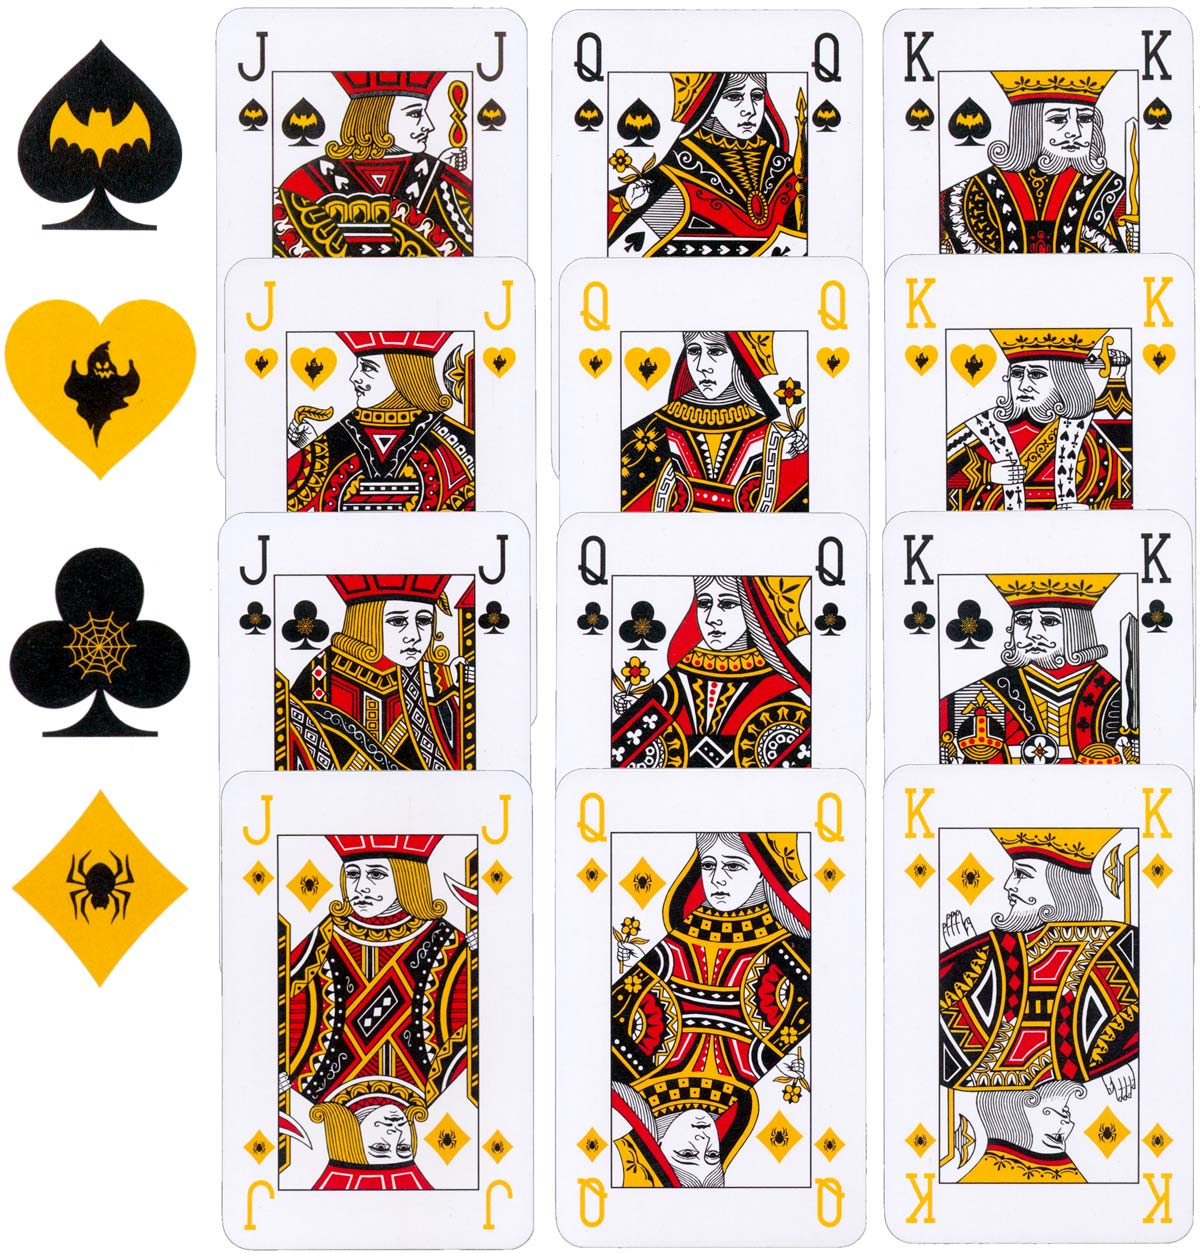 'House of Horror' deck published by Strongbow cider, 2015